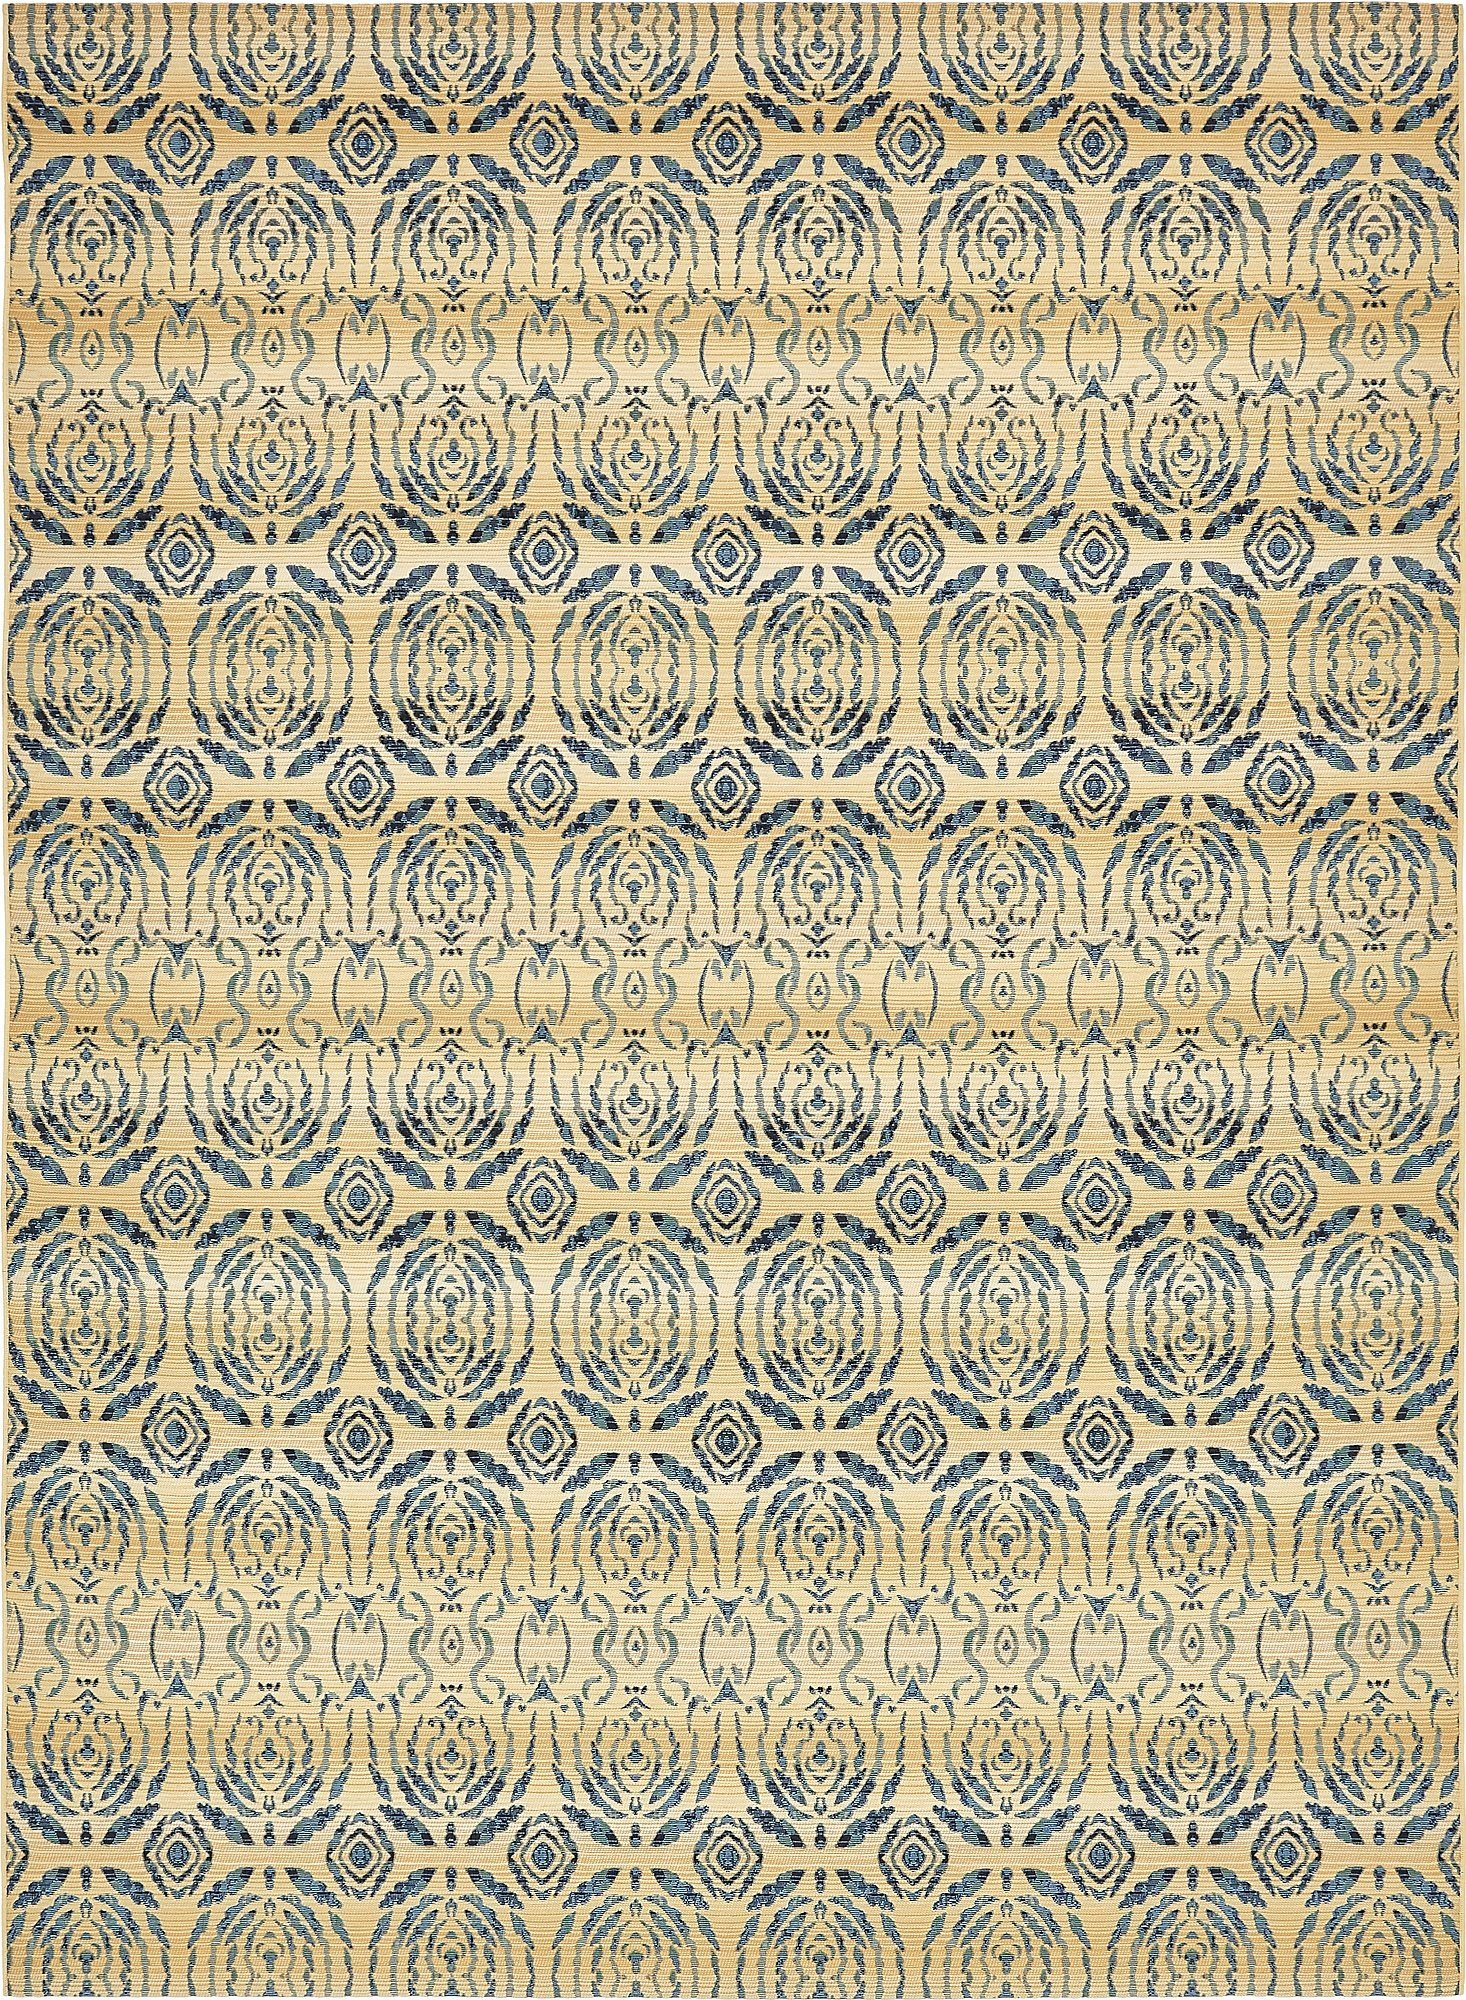 Unique Loom Eden Outdoor Collection Beige 8 x 11 Area Rug (8' x 11' 4'')